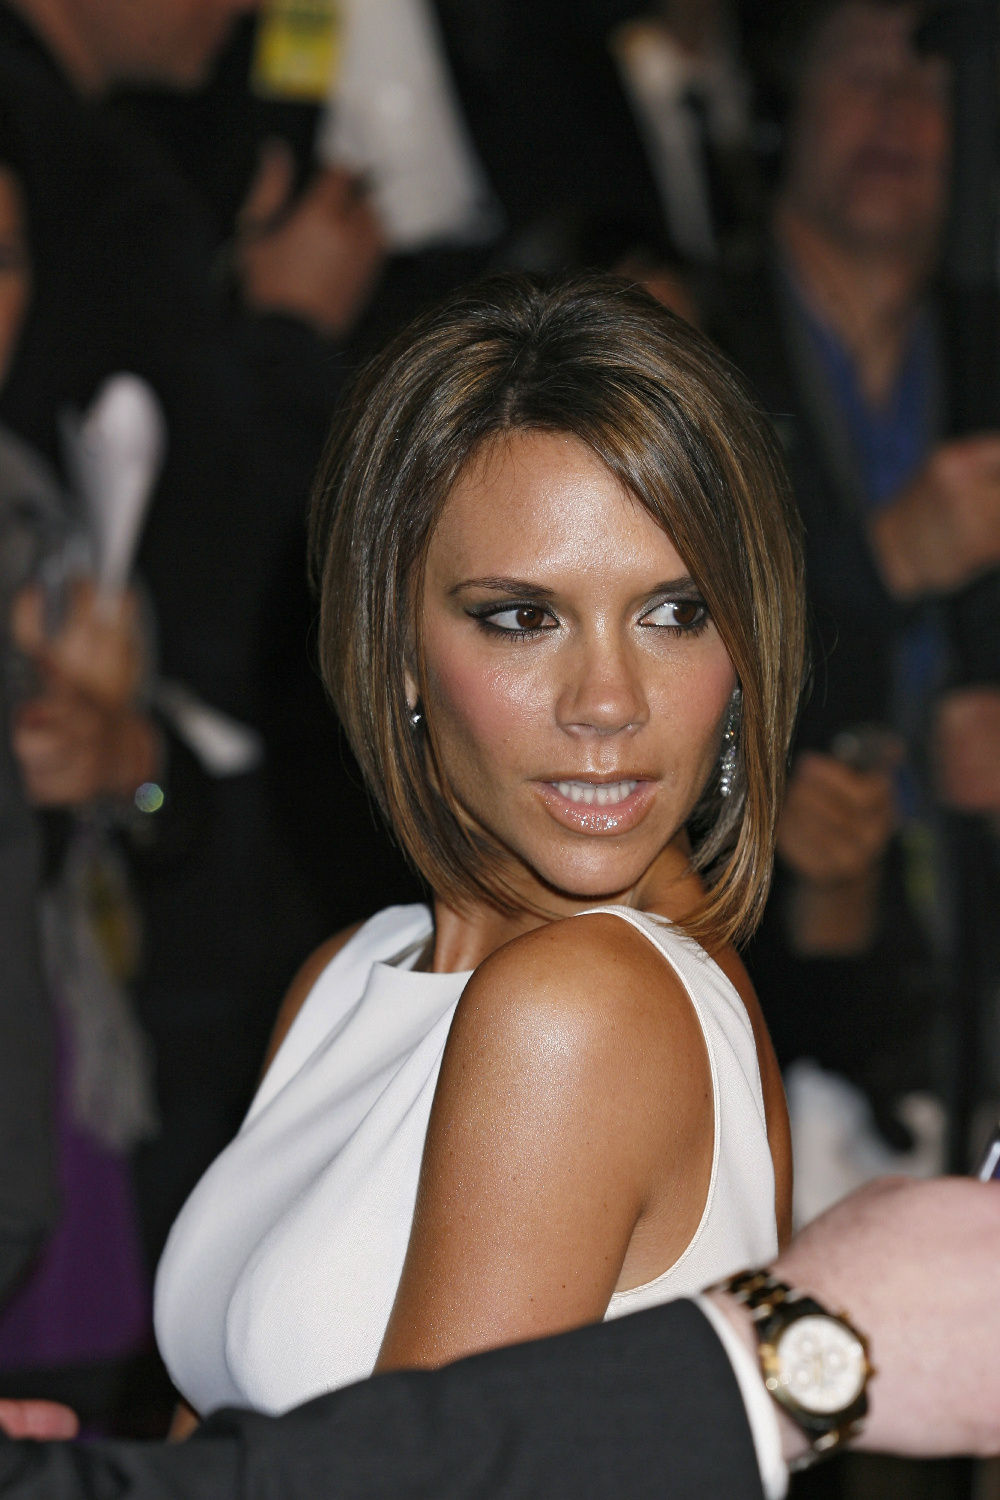 Victoria Beckham Hairstyle | Taaz Hairstyles Throughout Victoria Beckham Short Haircuts (View 14 of 25)